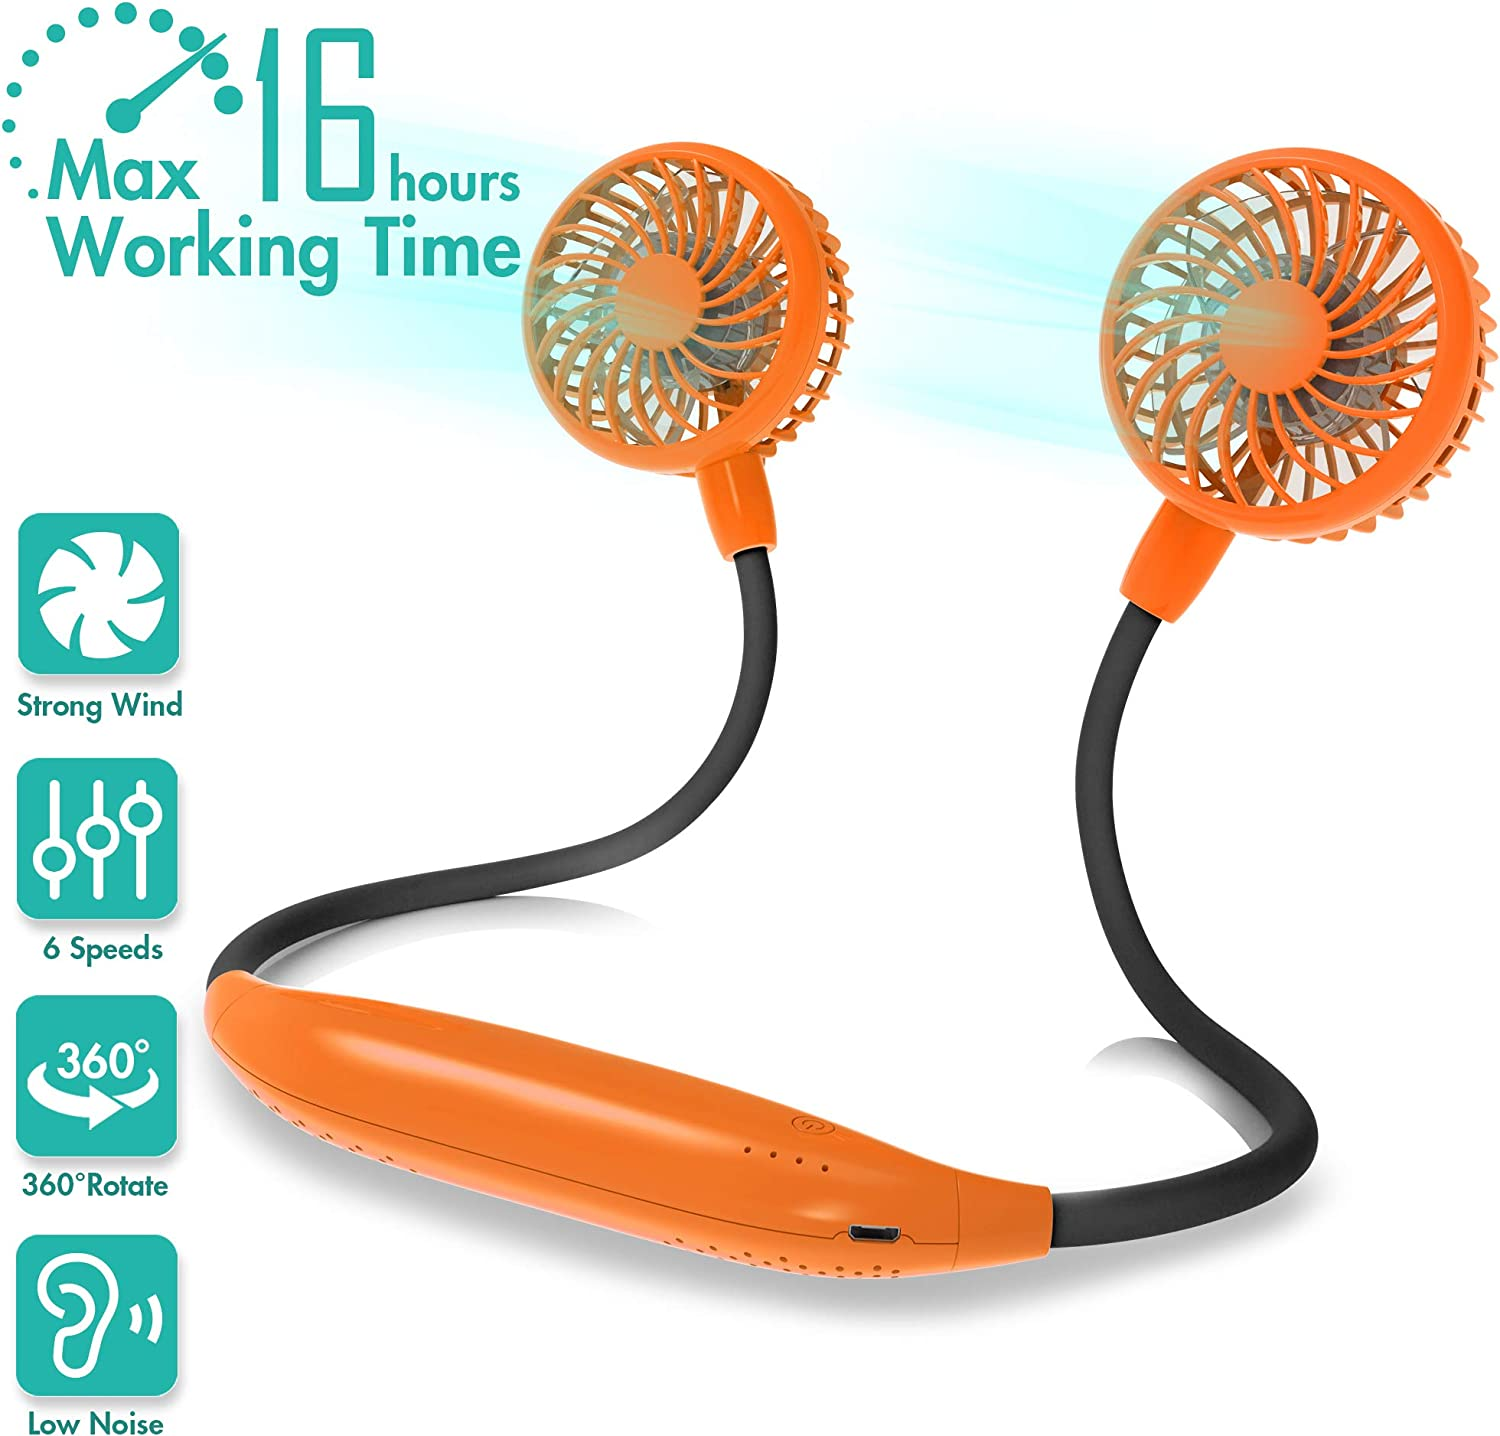 Portable Neck Fan, 2600mAh Battery Operated Ultra Quiet Hands Free USB Fan with 6 Speeds, Strong Wind, 360° Adjustable High Flexibility Wearable Personal Fan for Home Office Outdoor Travel (Orange)